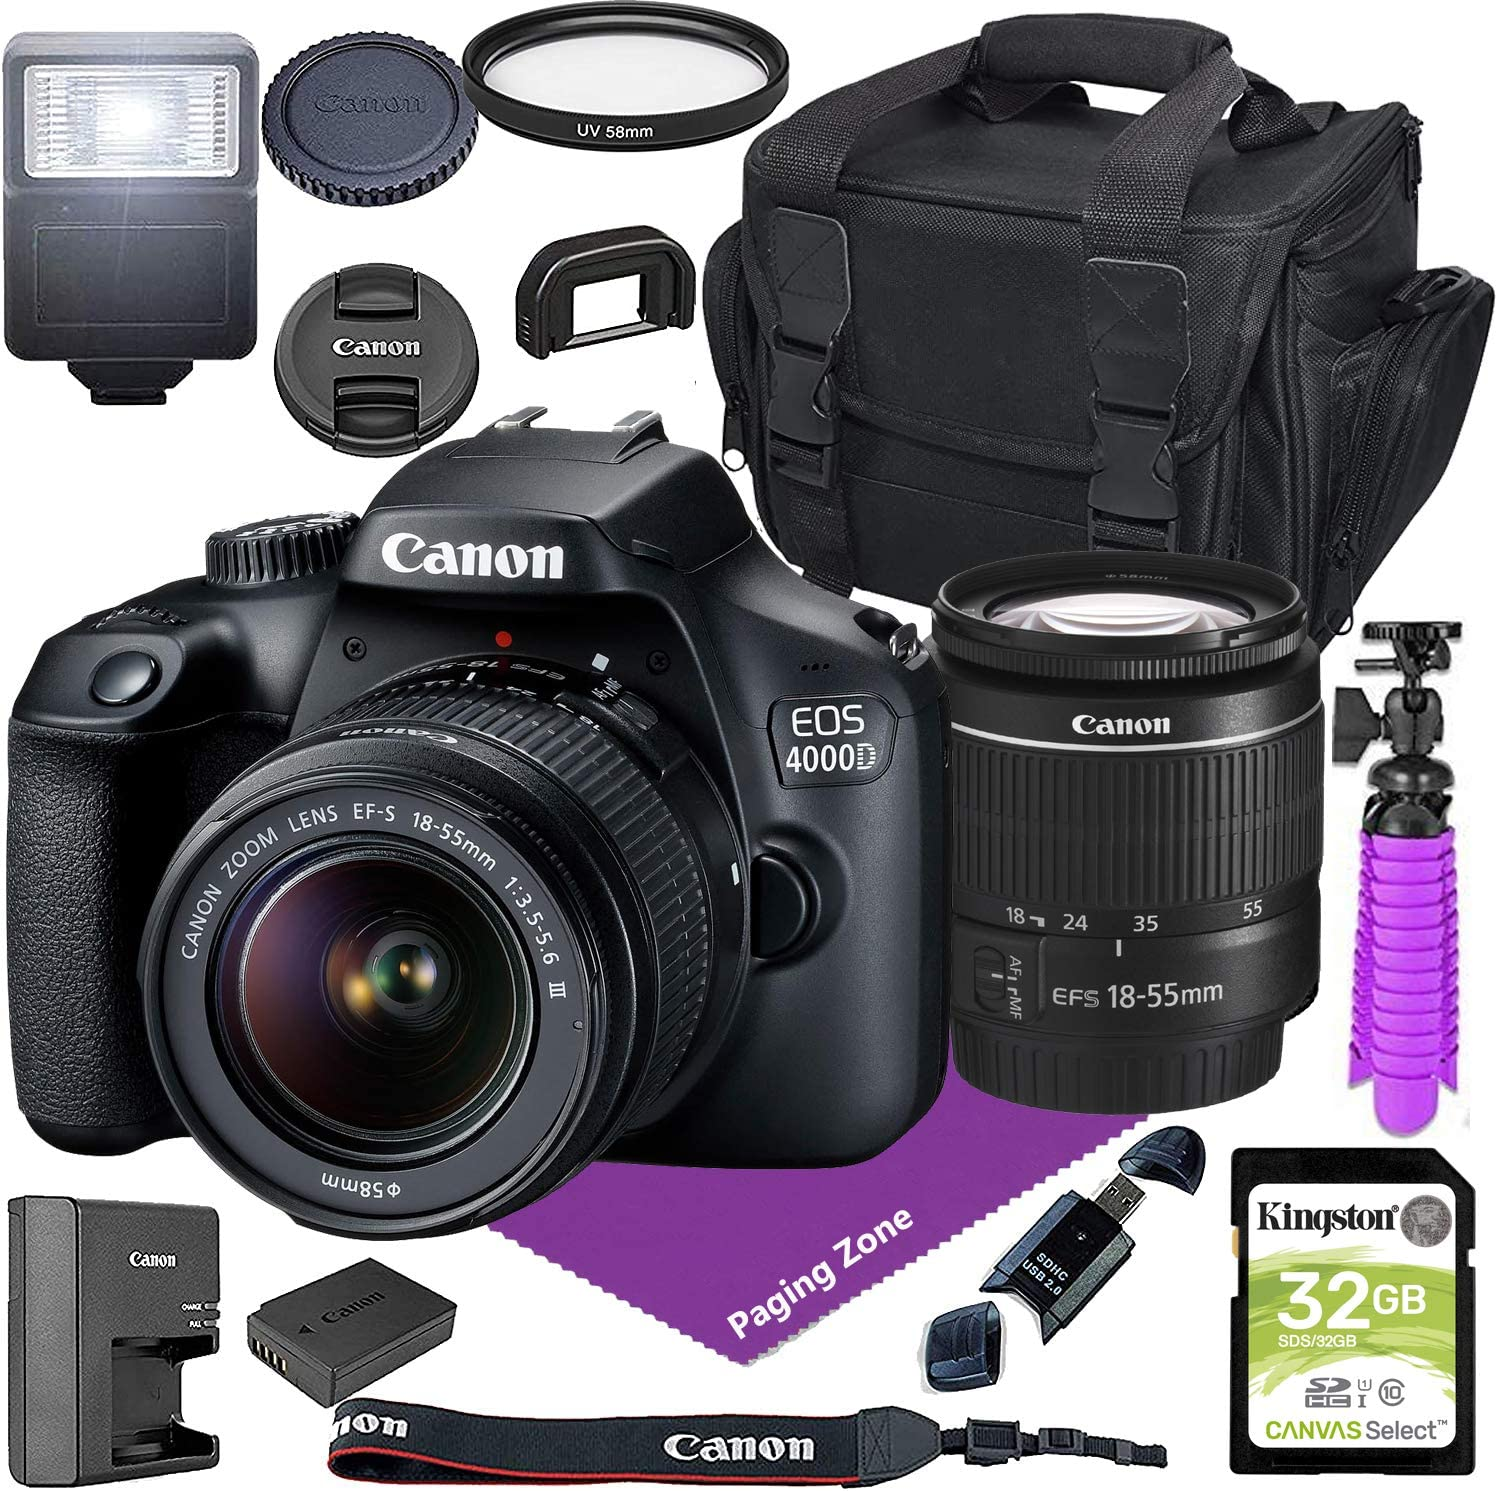 Canon EOS 4000D DSLR Camera w/Canon EF-S 18-55mm F/3.5-5.6 III Zoom Lens + Case + 32GB SD Card Bundle